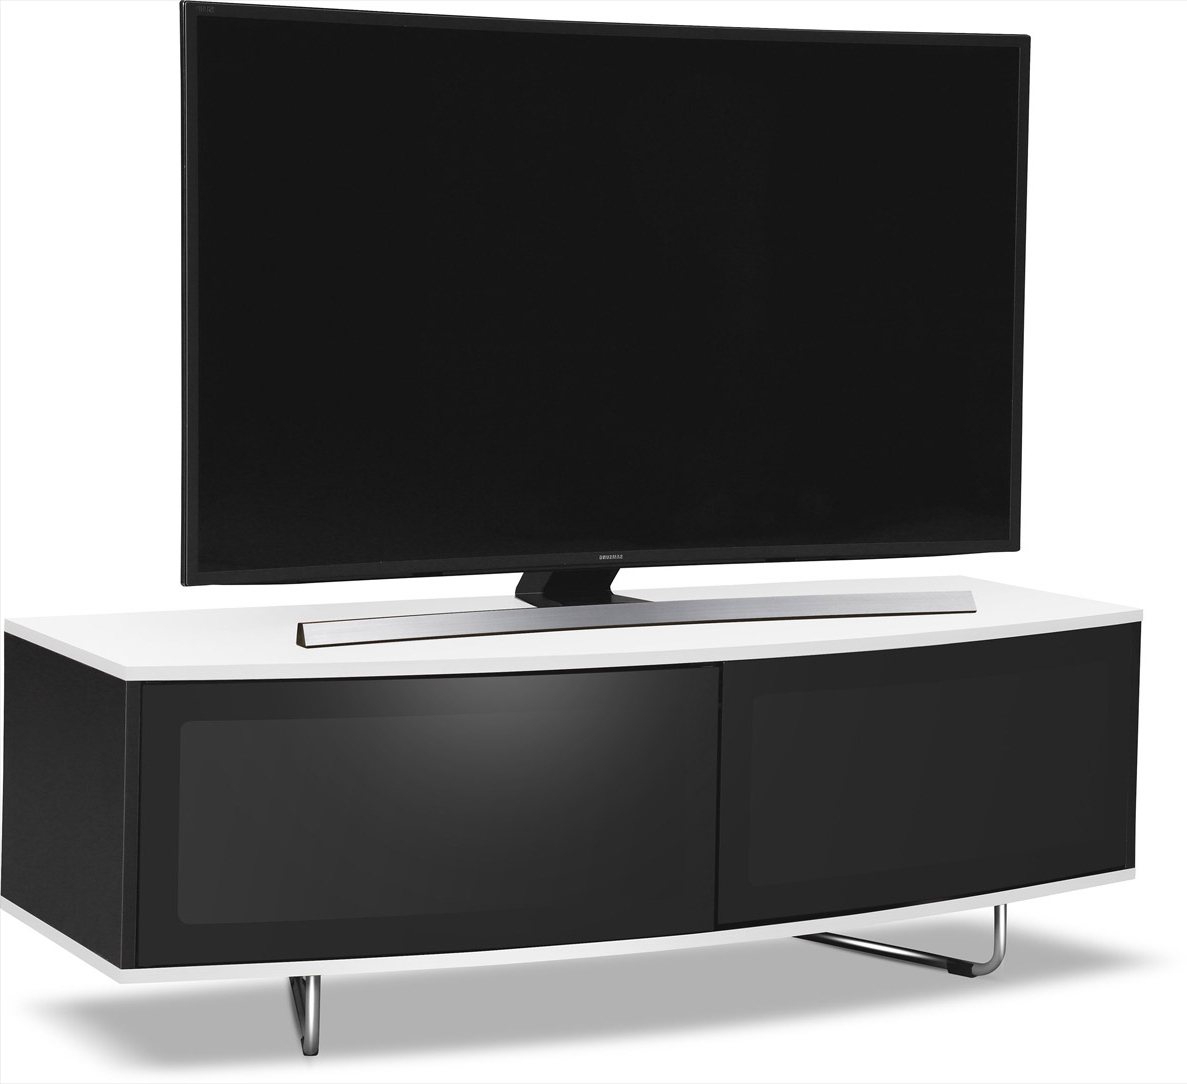 """Best And Newest Mda Designs Caru White Tv Stand For Up To 65 Inch Tvs With Regard To Finnick Tv Stands For Tvs Up To 65"""" (View 16 of 20)"""